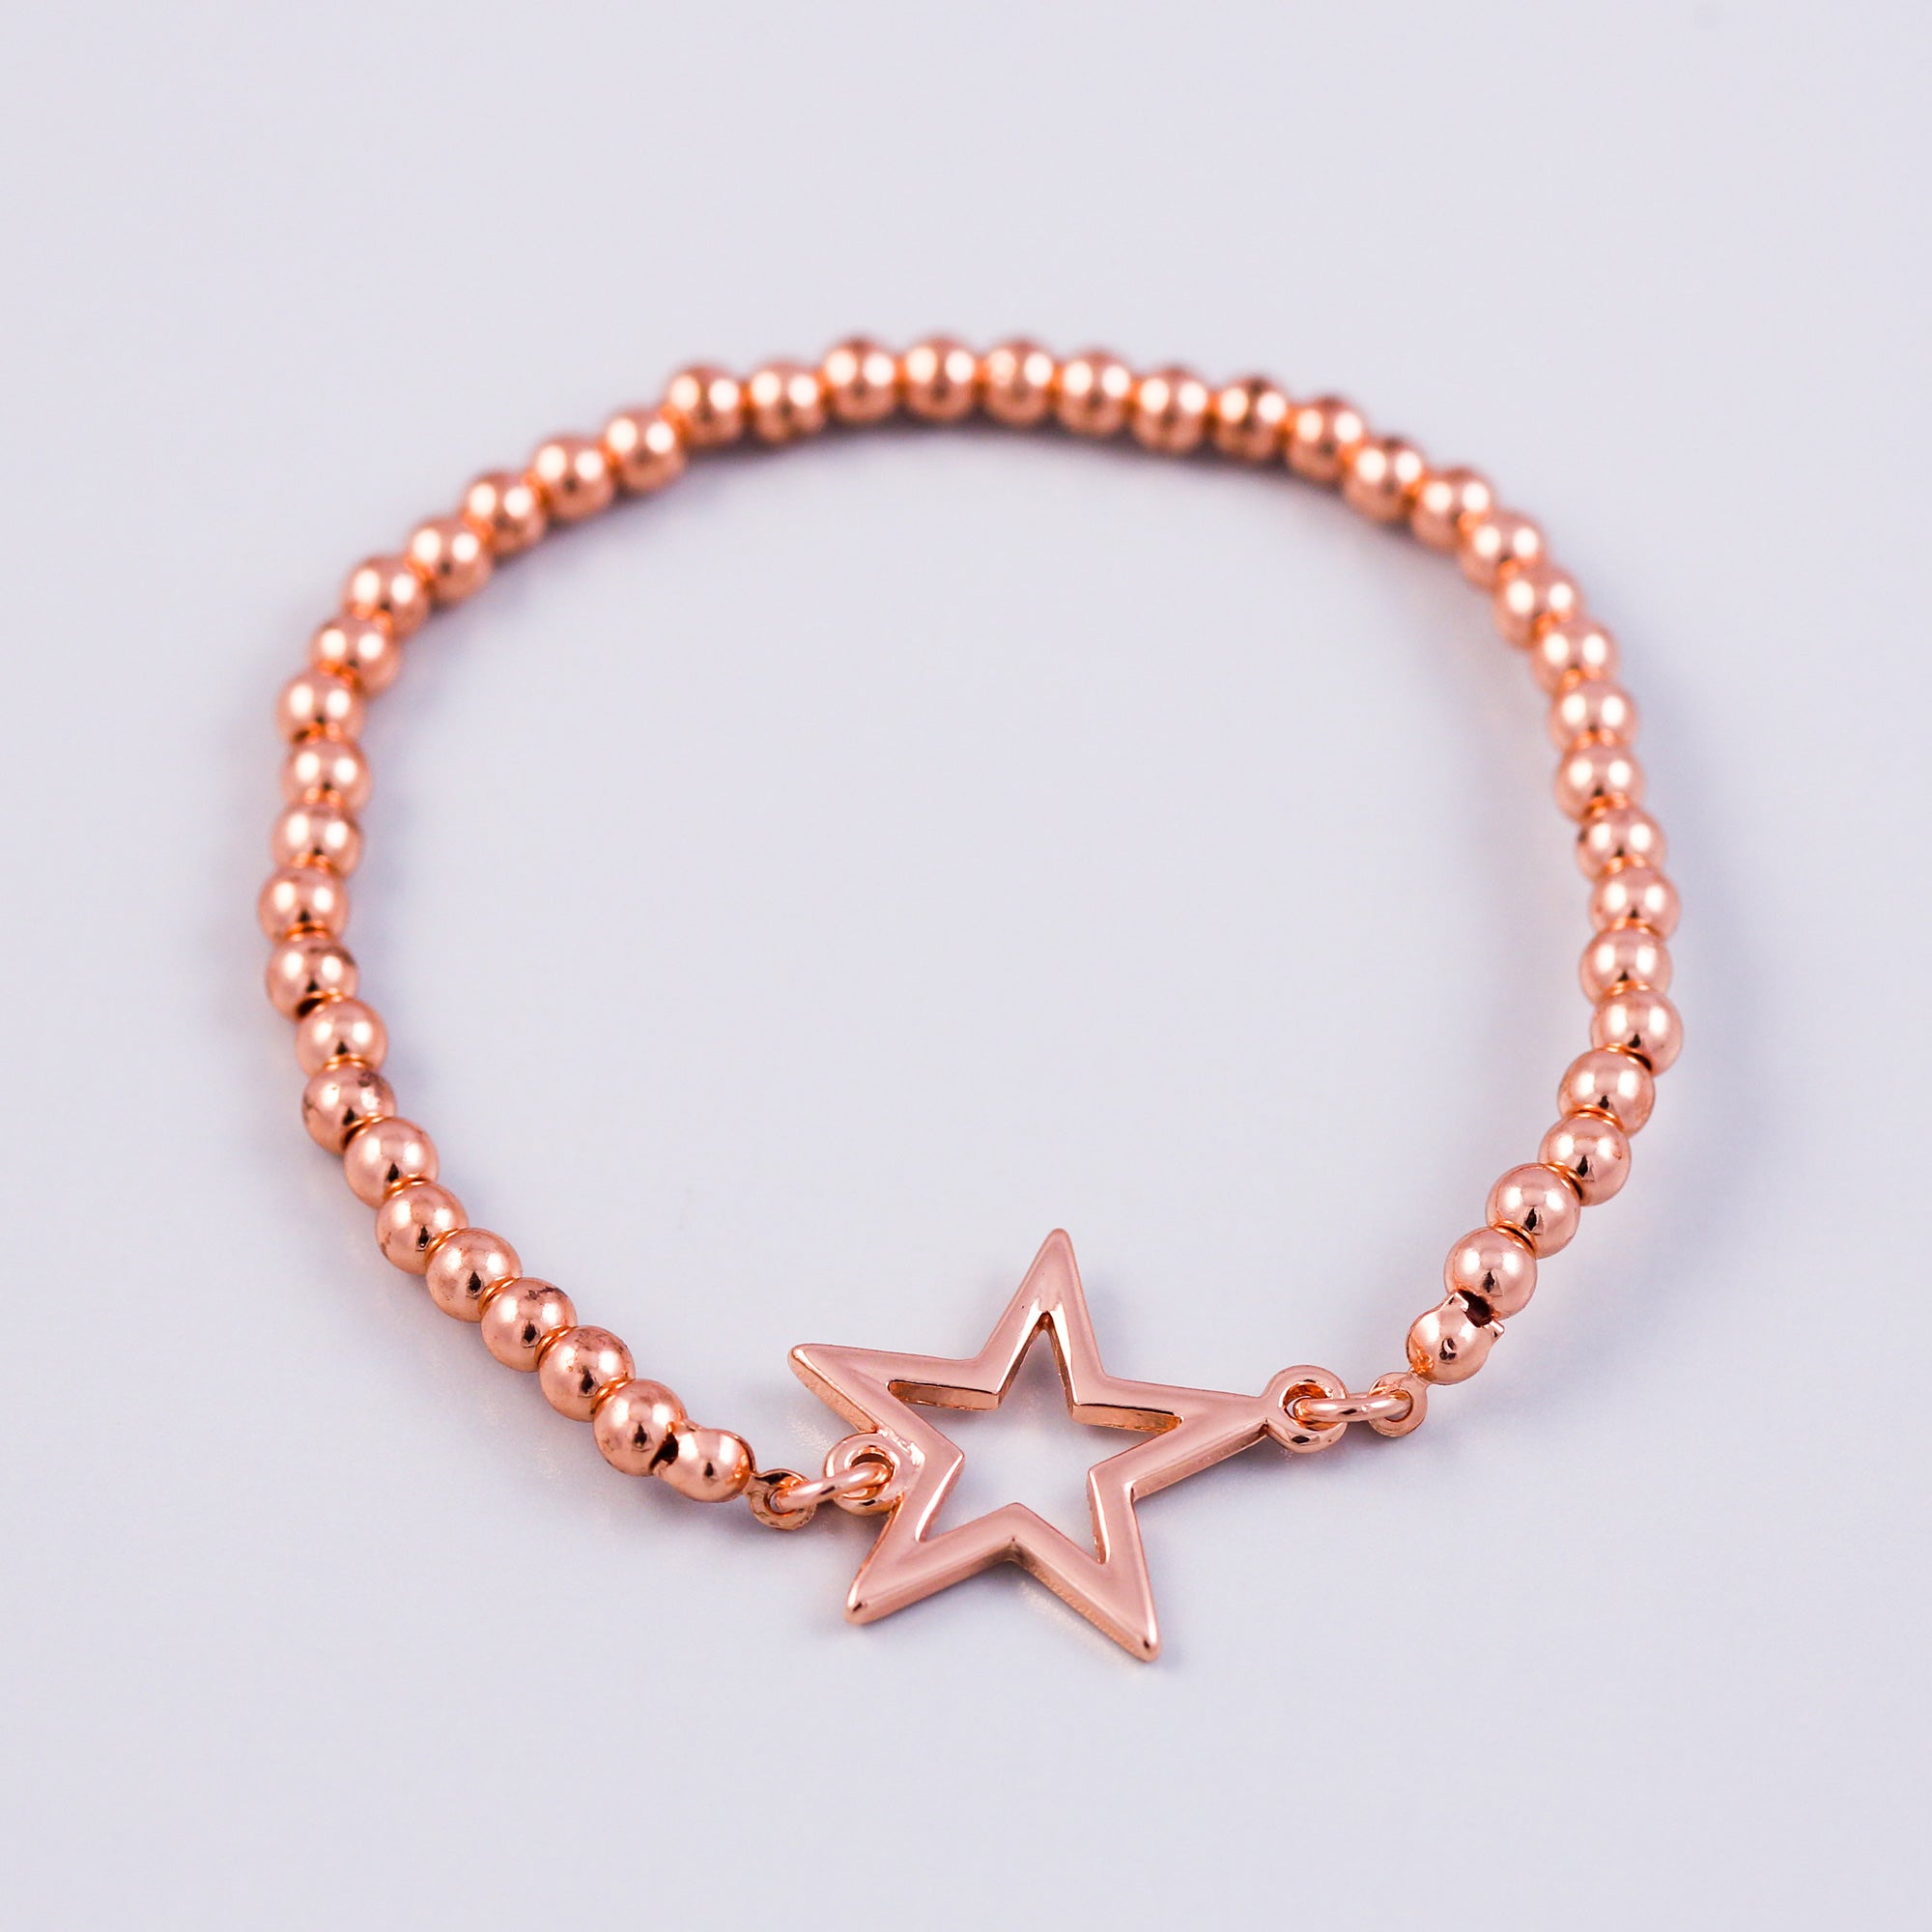 Rose Gold Outline Star & Metallic Bead Bridal Bracelet